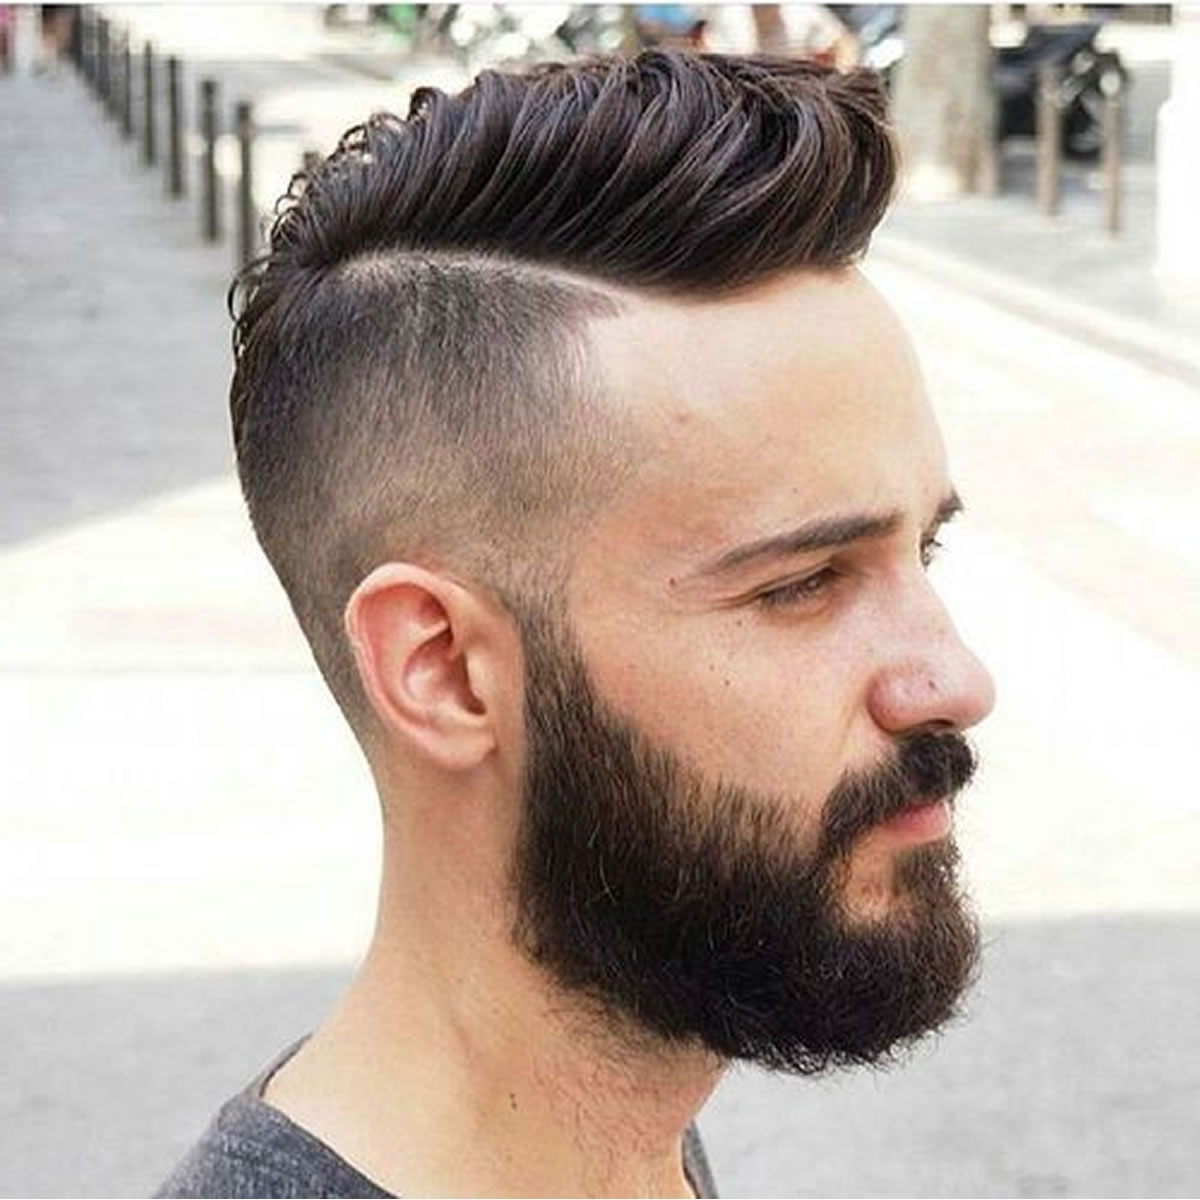 2018 Short Haircuts For Men – 17 Great Short Hair Ideas, Photos Throughout Best And Newest Male Pixie Hairstyles (View 12 of 15)